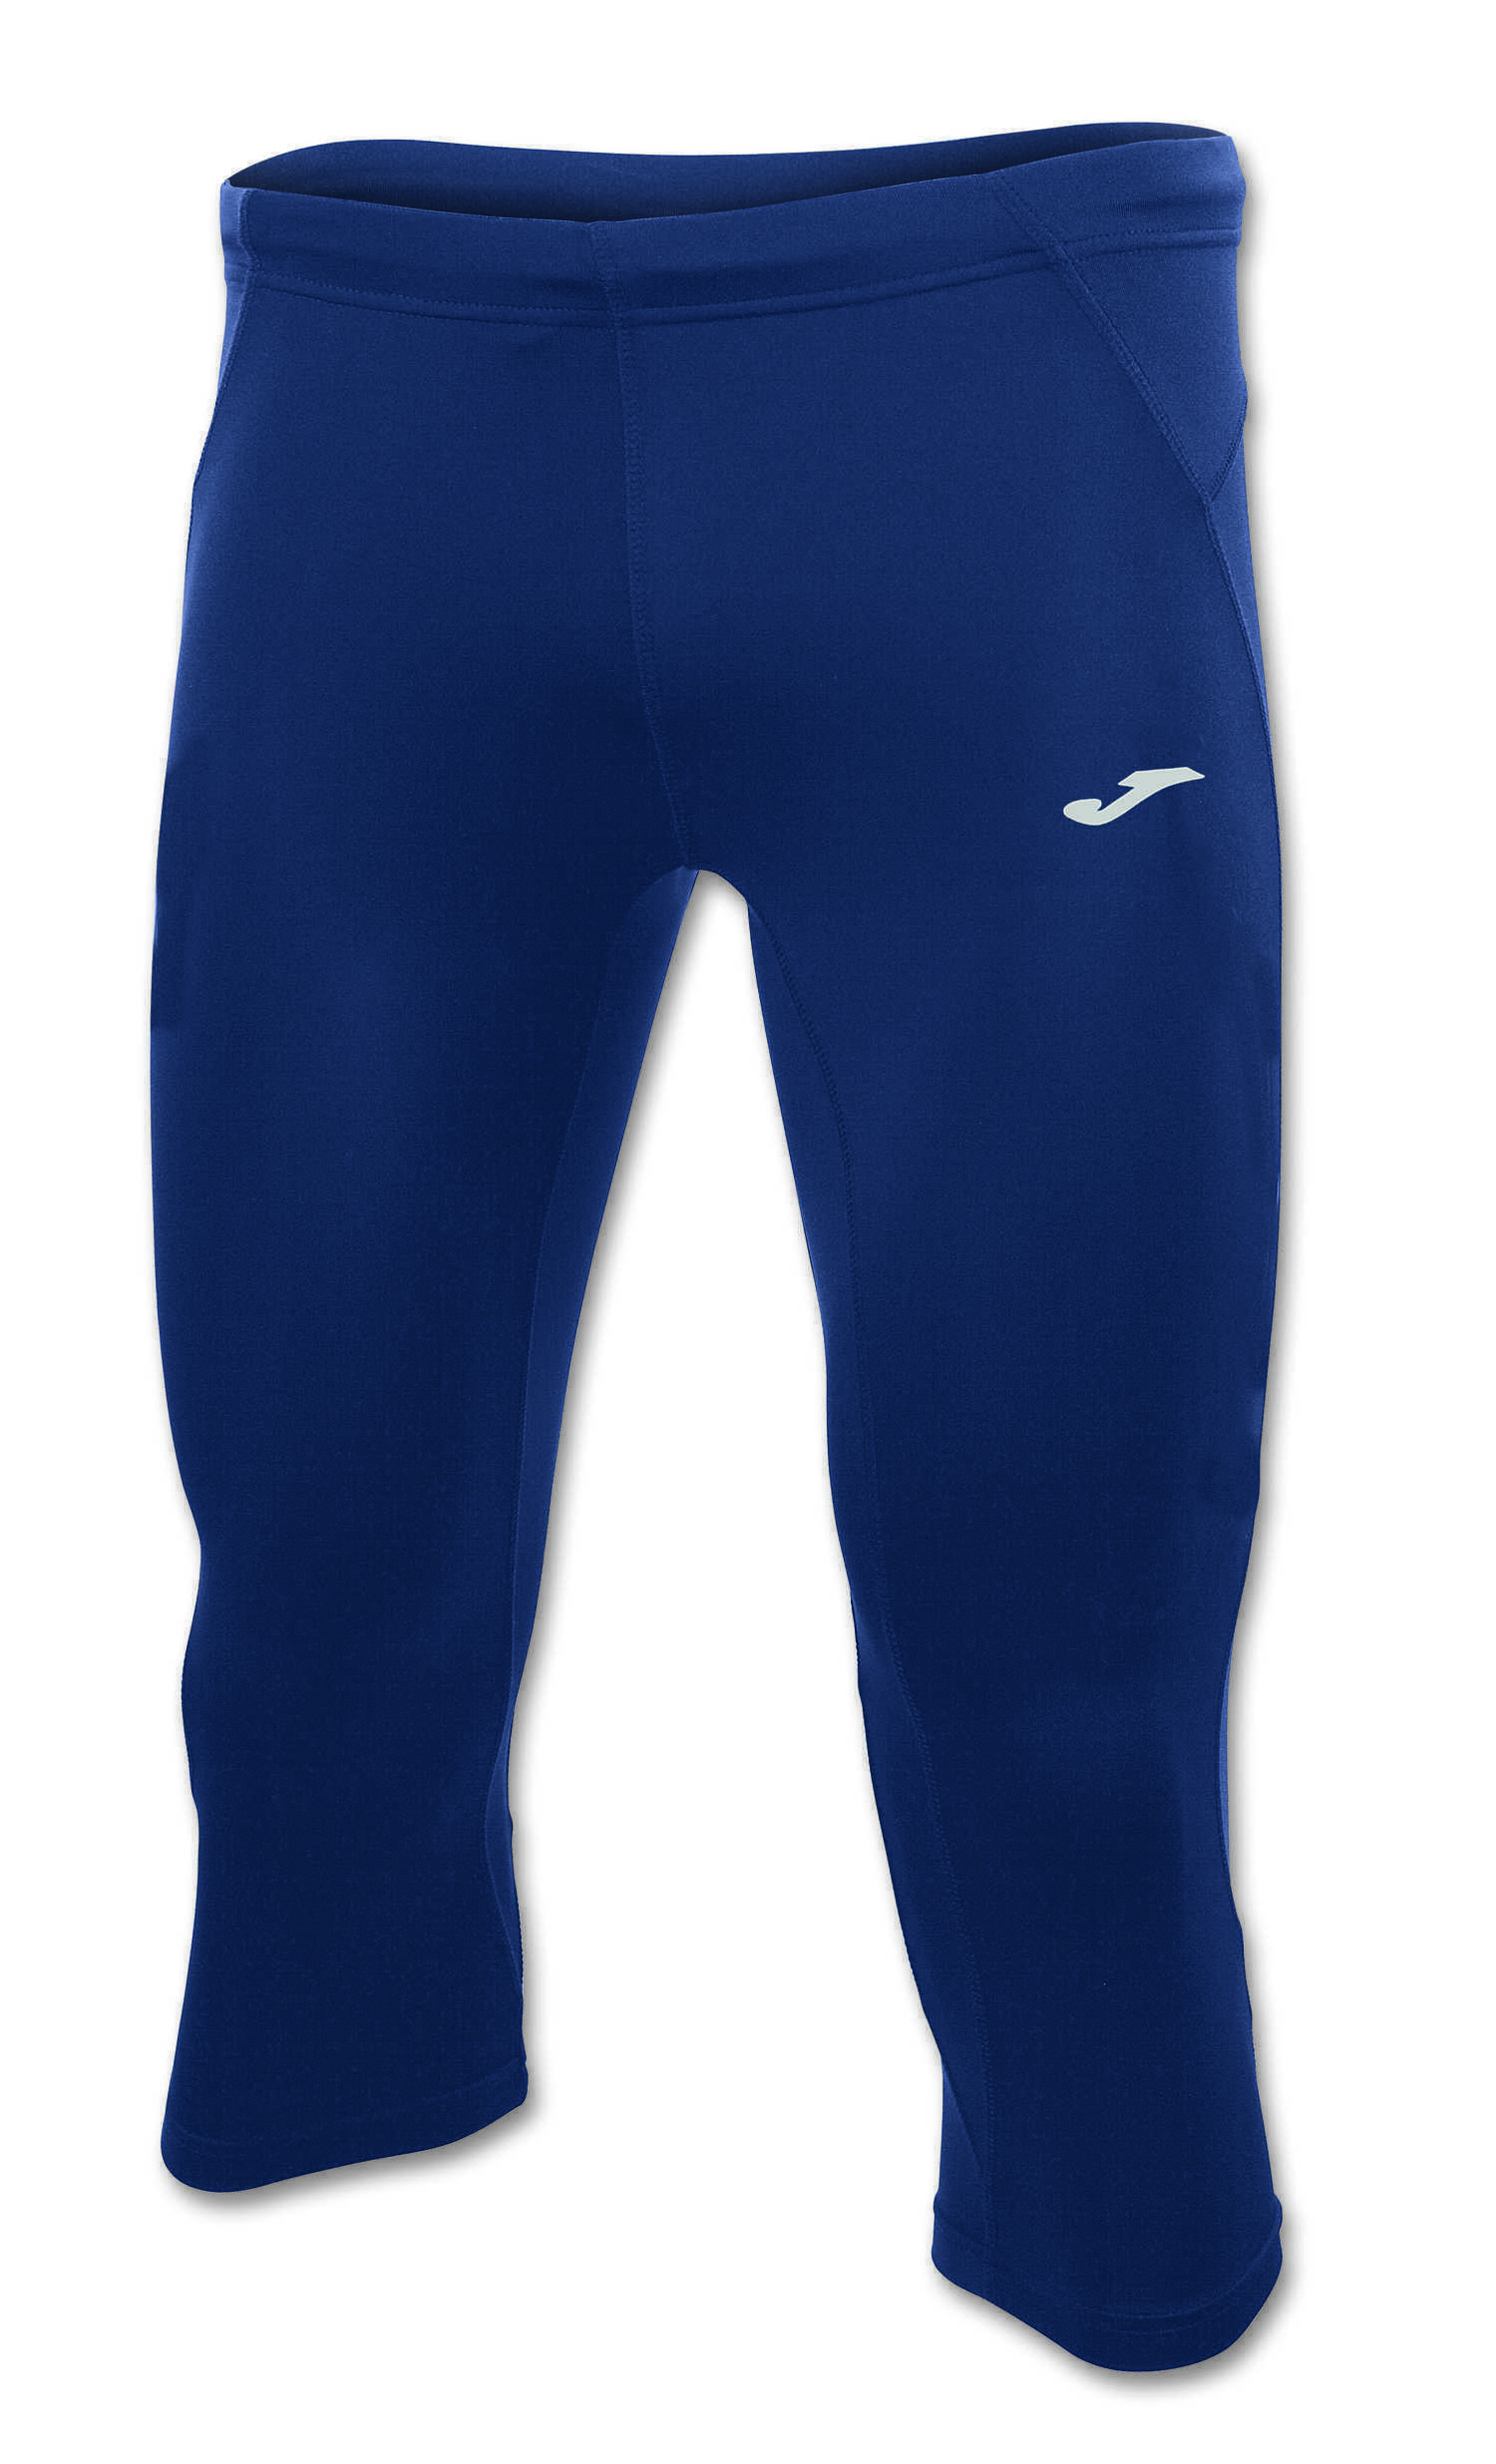 JOMA-PIRATE-LEGGINGS-RECORD-AZUL-MARINO-Running-PANTALONES-TERMAL-HOMBRE